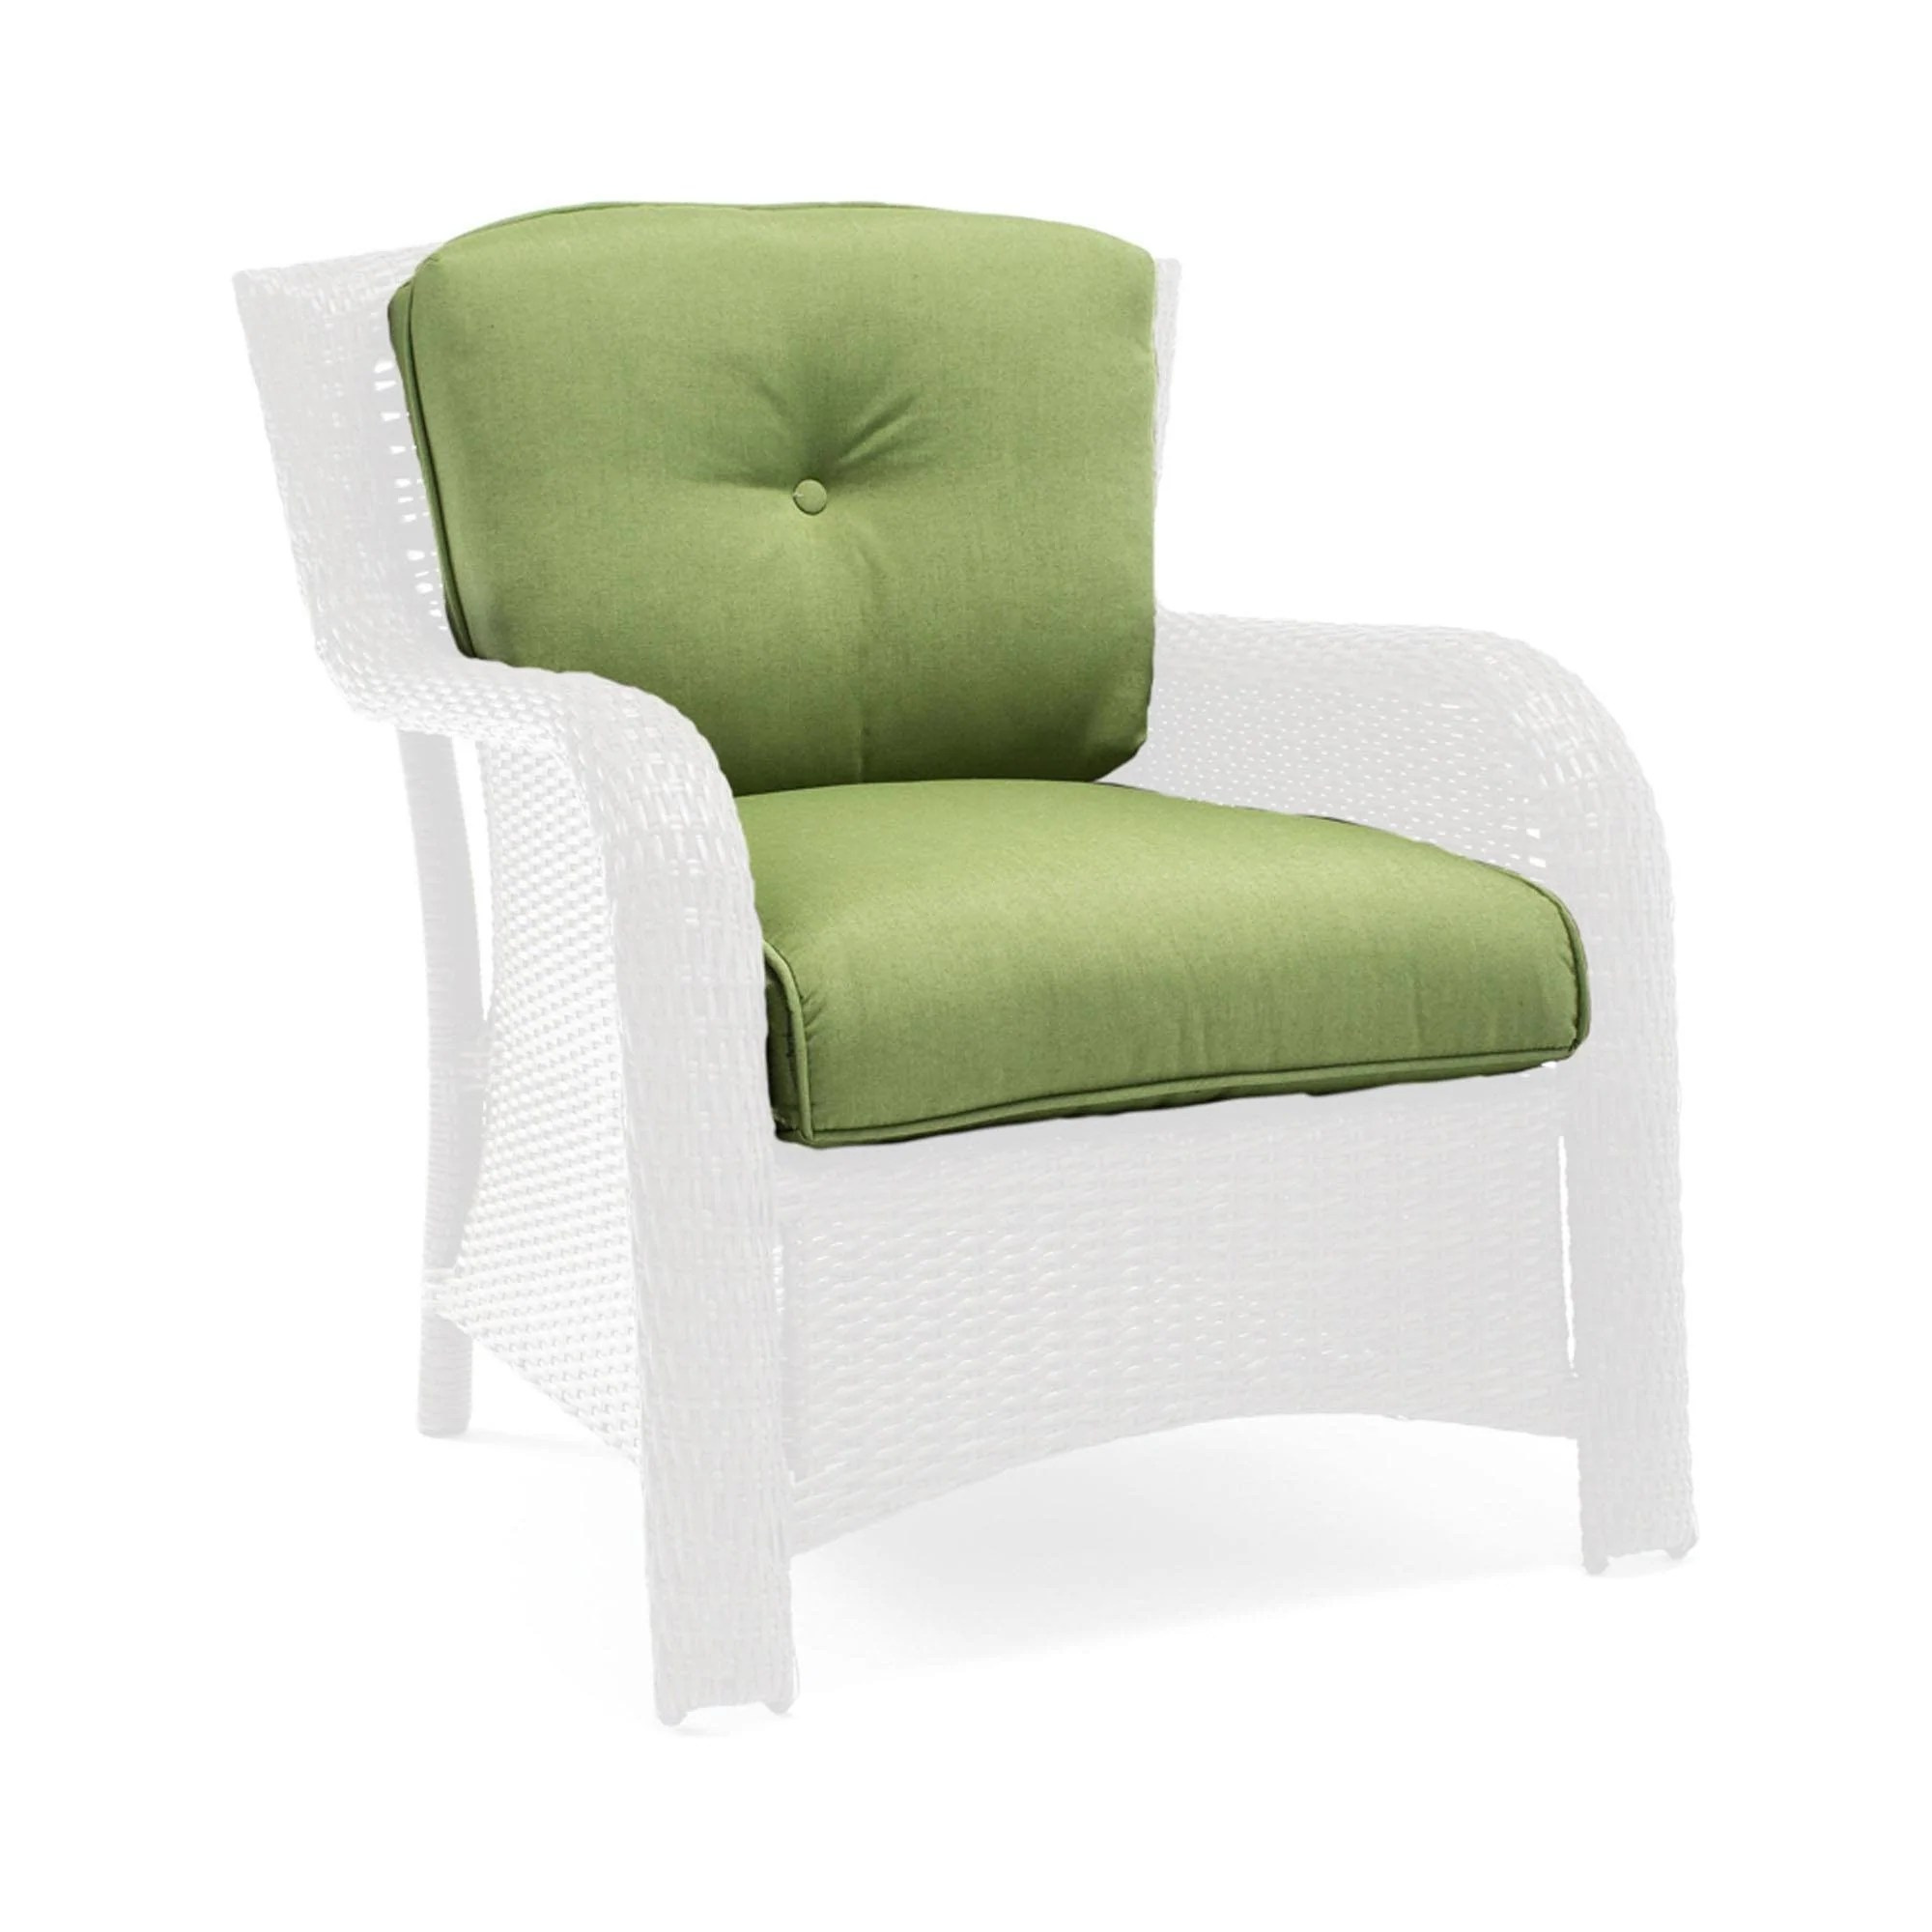 Sawyer Patio Lounge Chair Replacement Cushion  LaZBoy